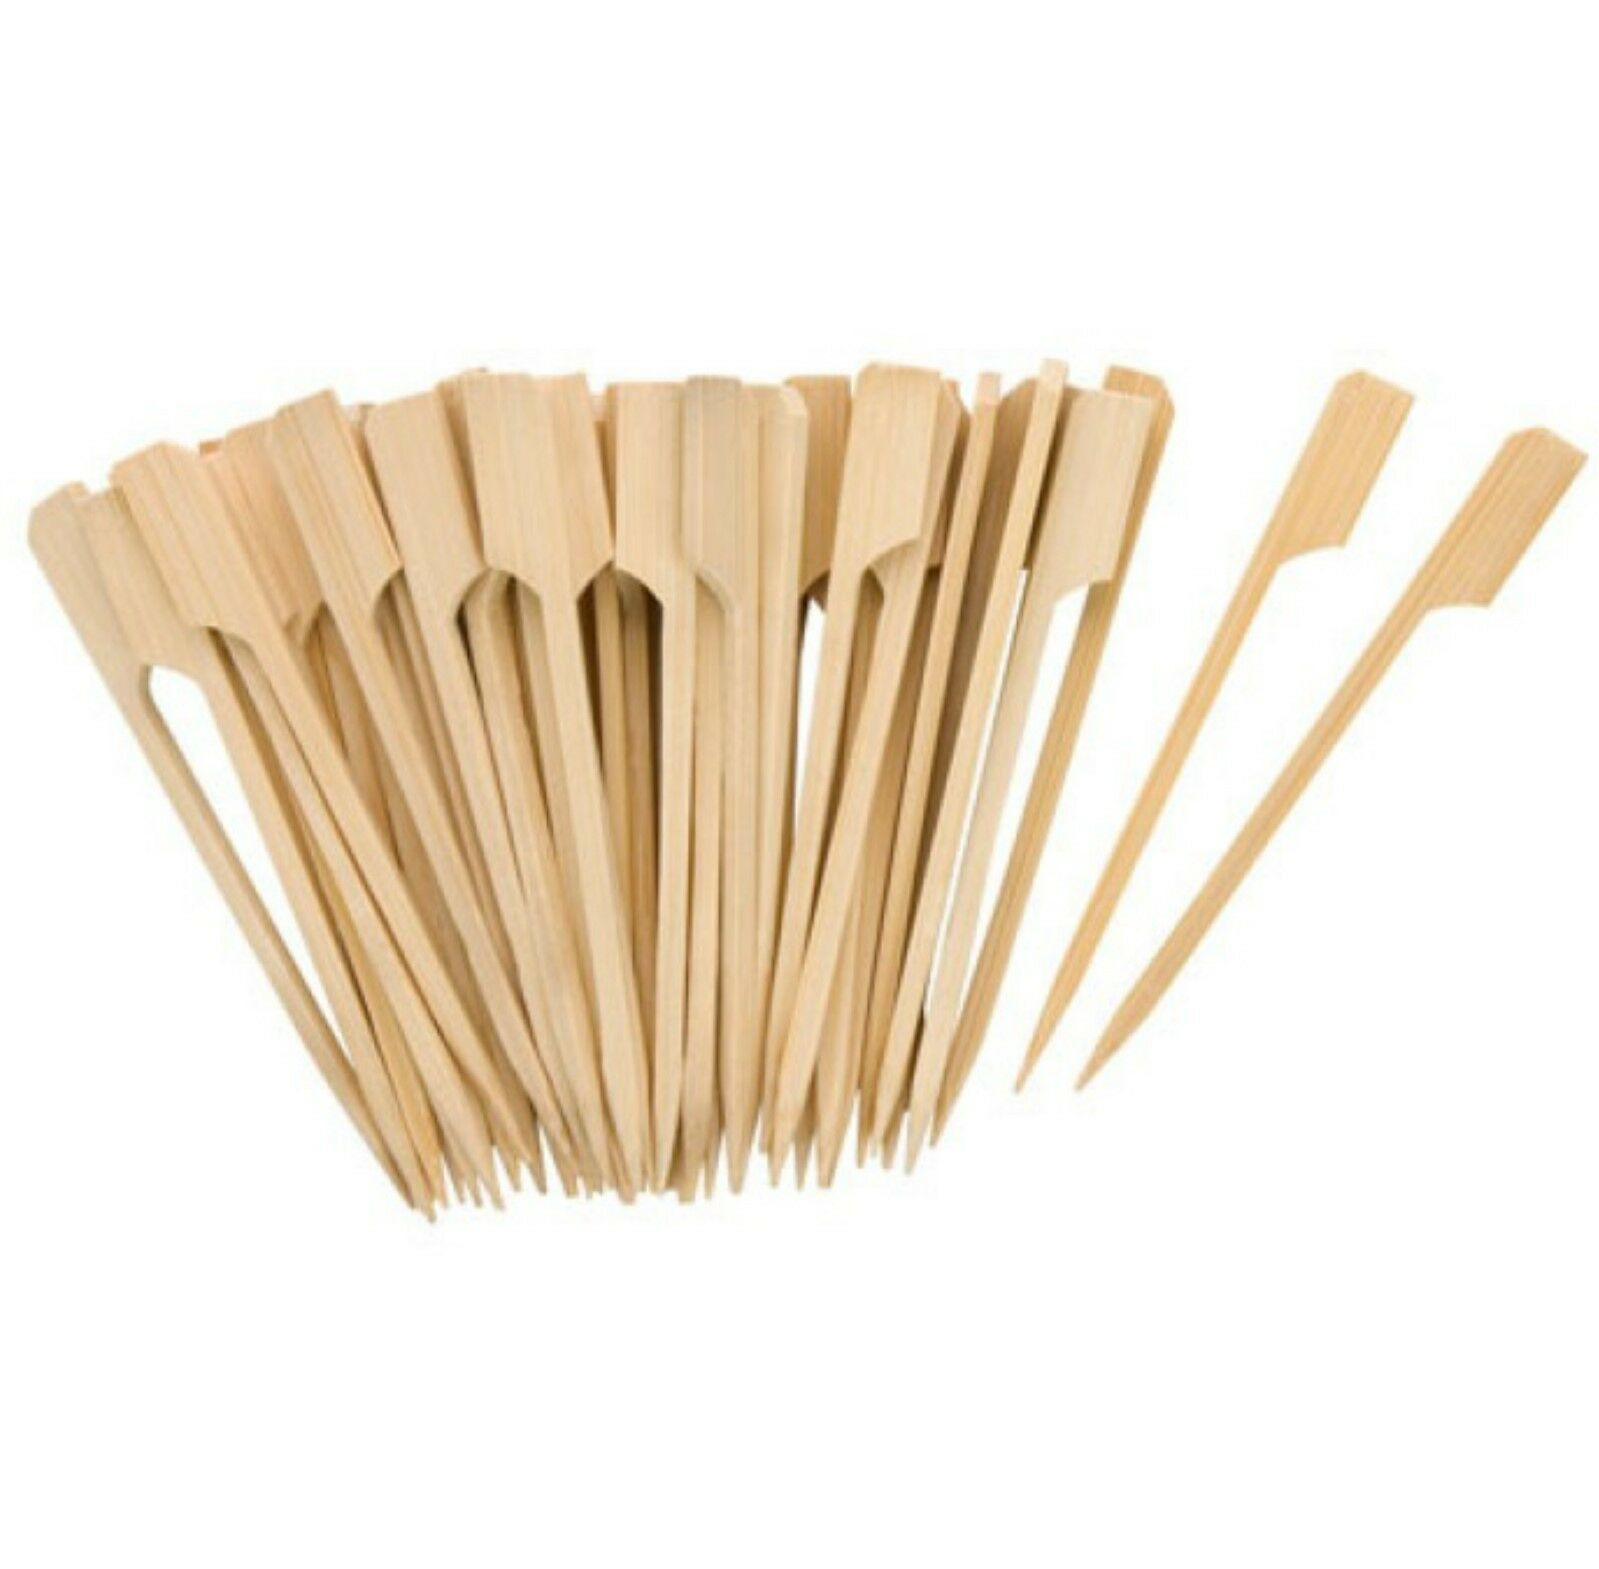 tala 50x 9cm bamboo wooden cocktail sticks burger canap s